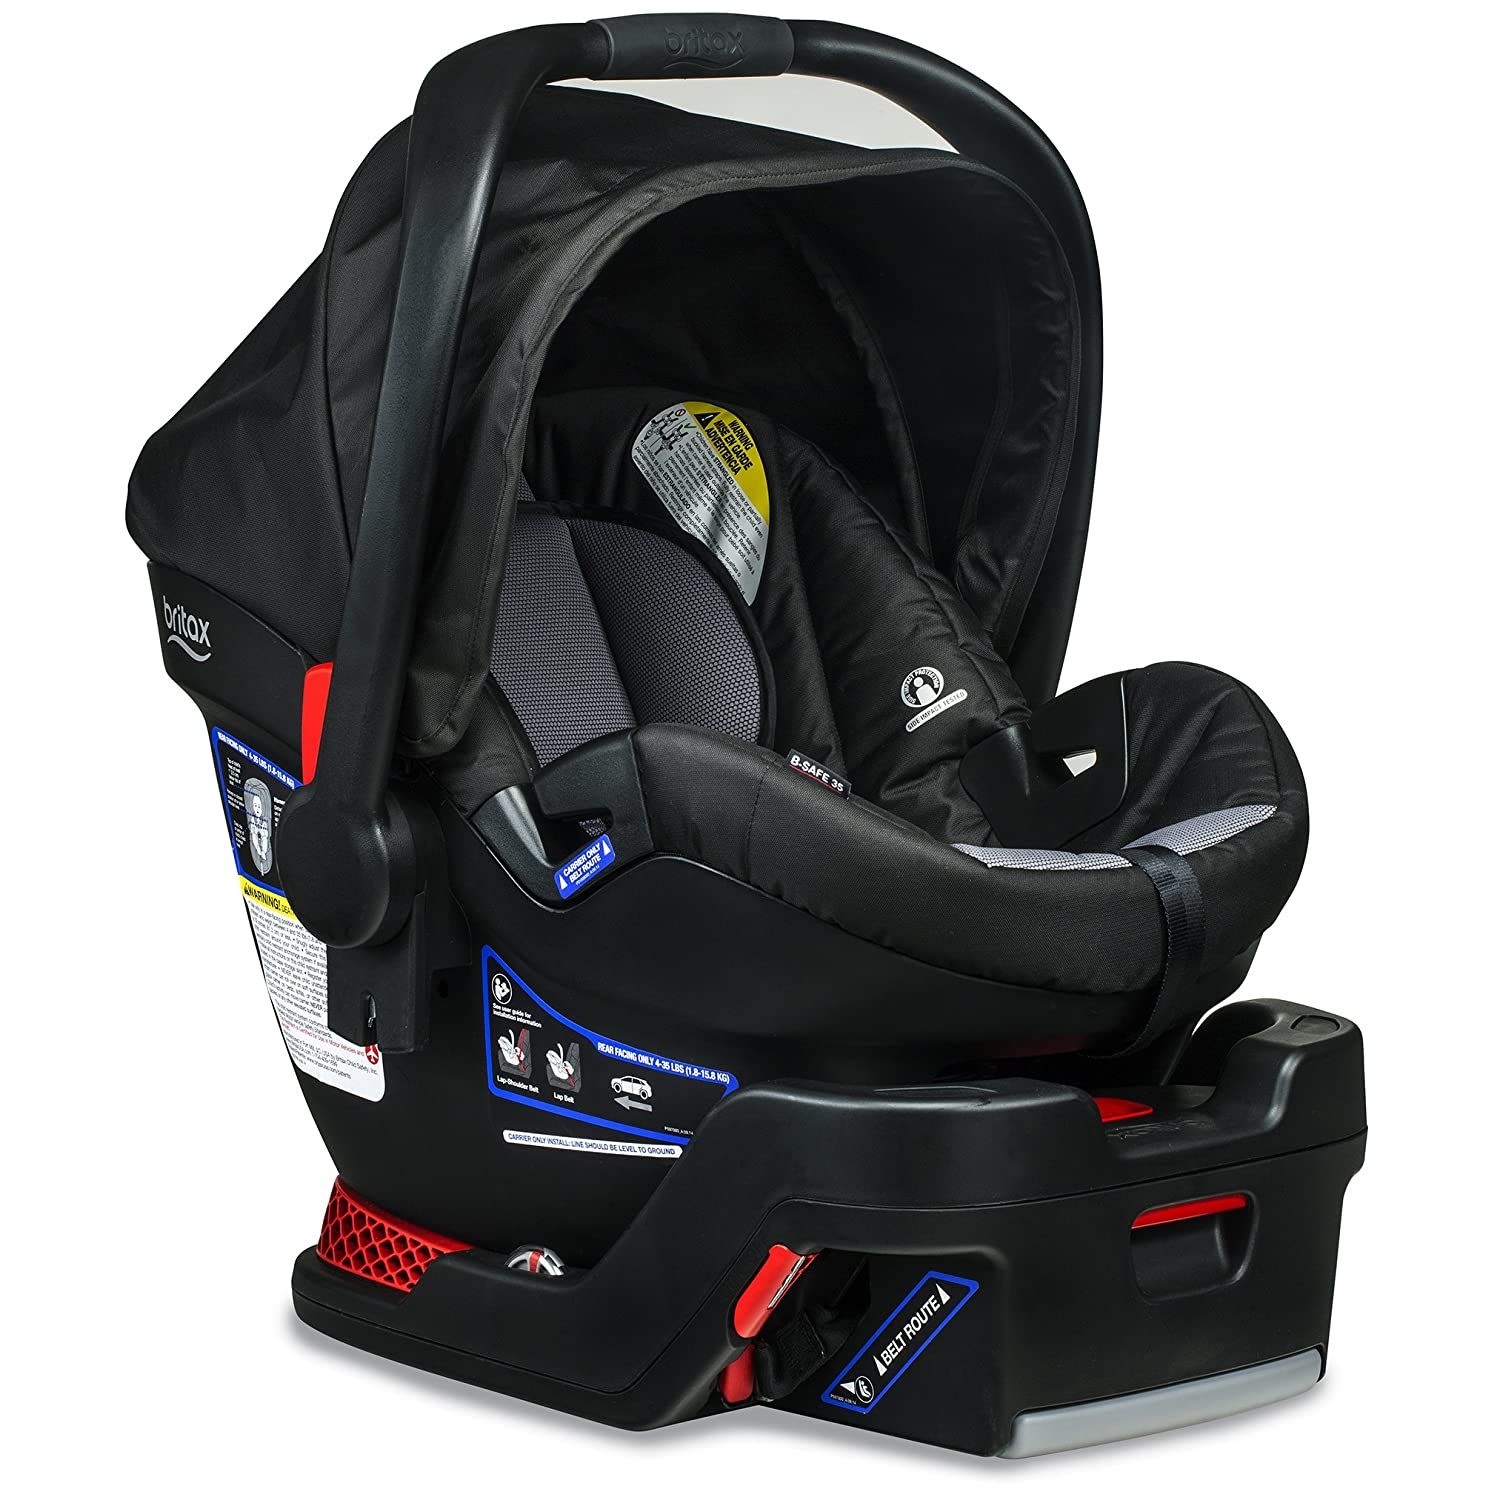 Britax B-Safe 35 1 Layer Impact Protection Infant Car Seat